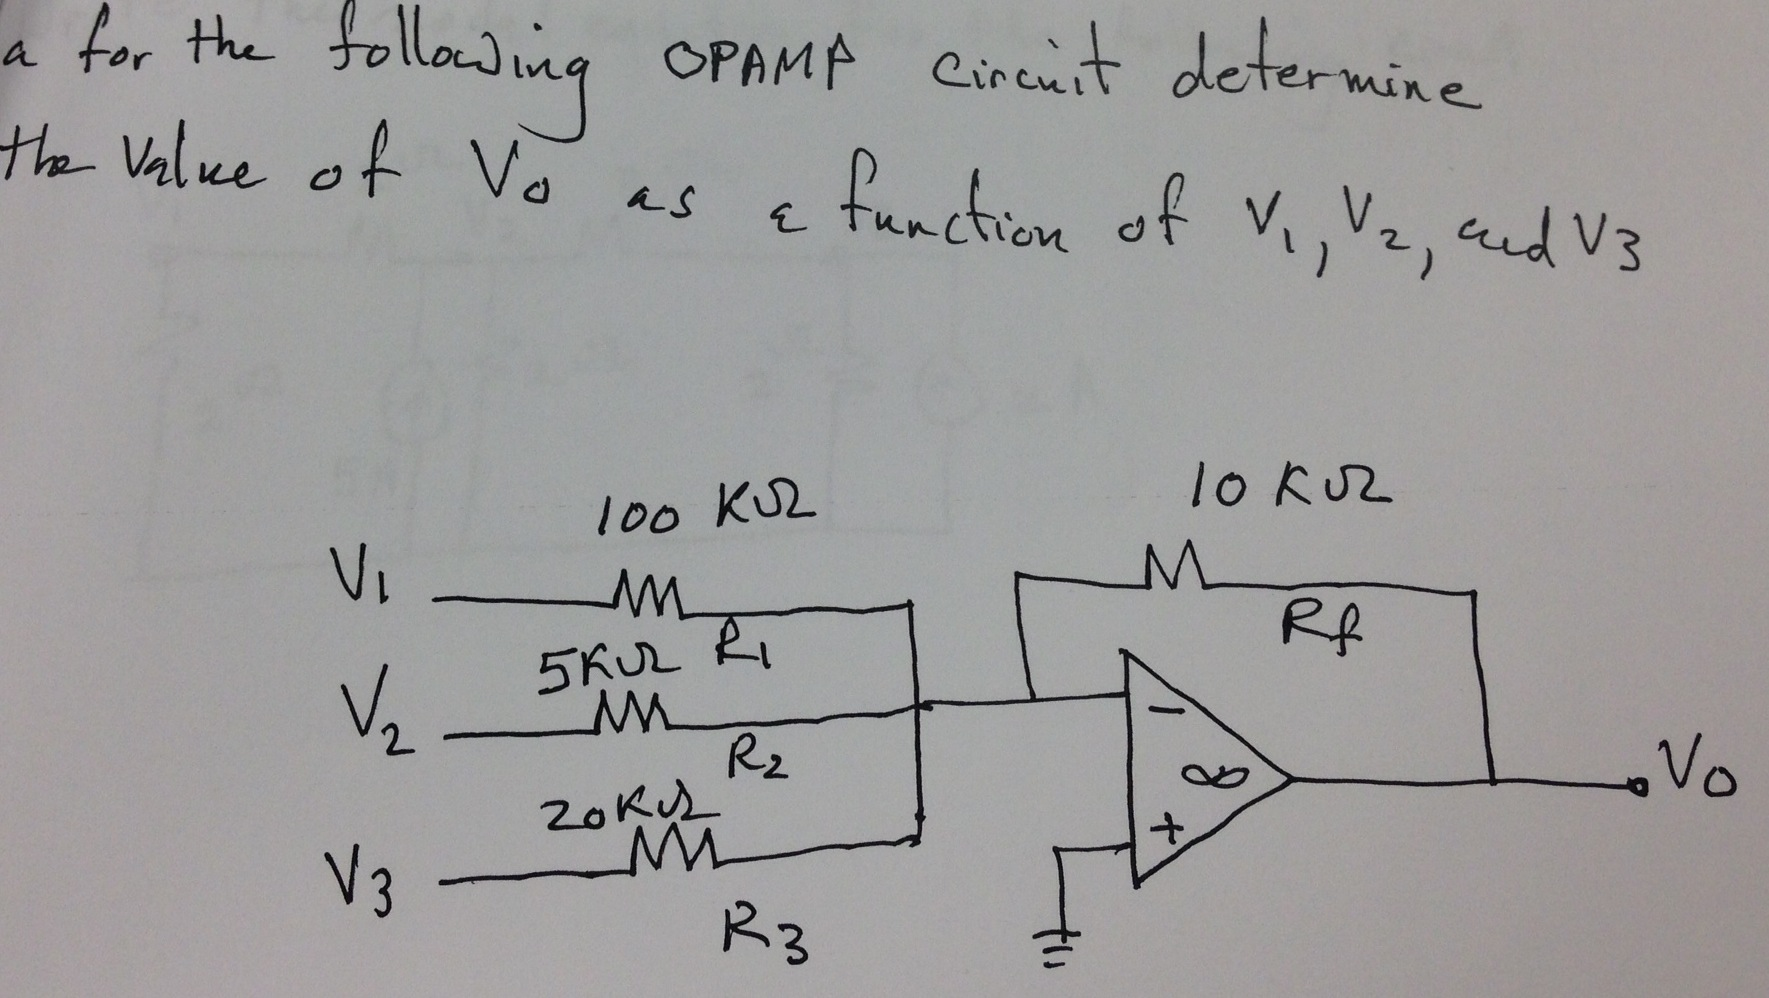 for the following OPAMP circuit determine the valu